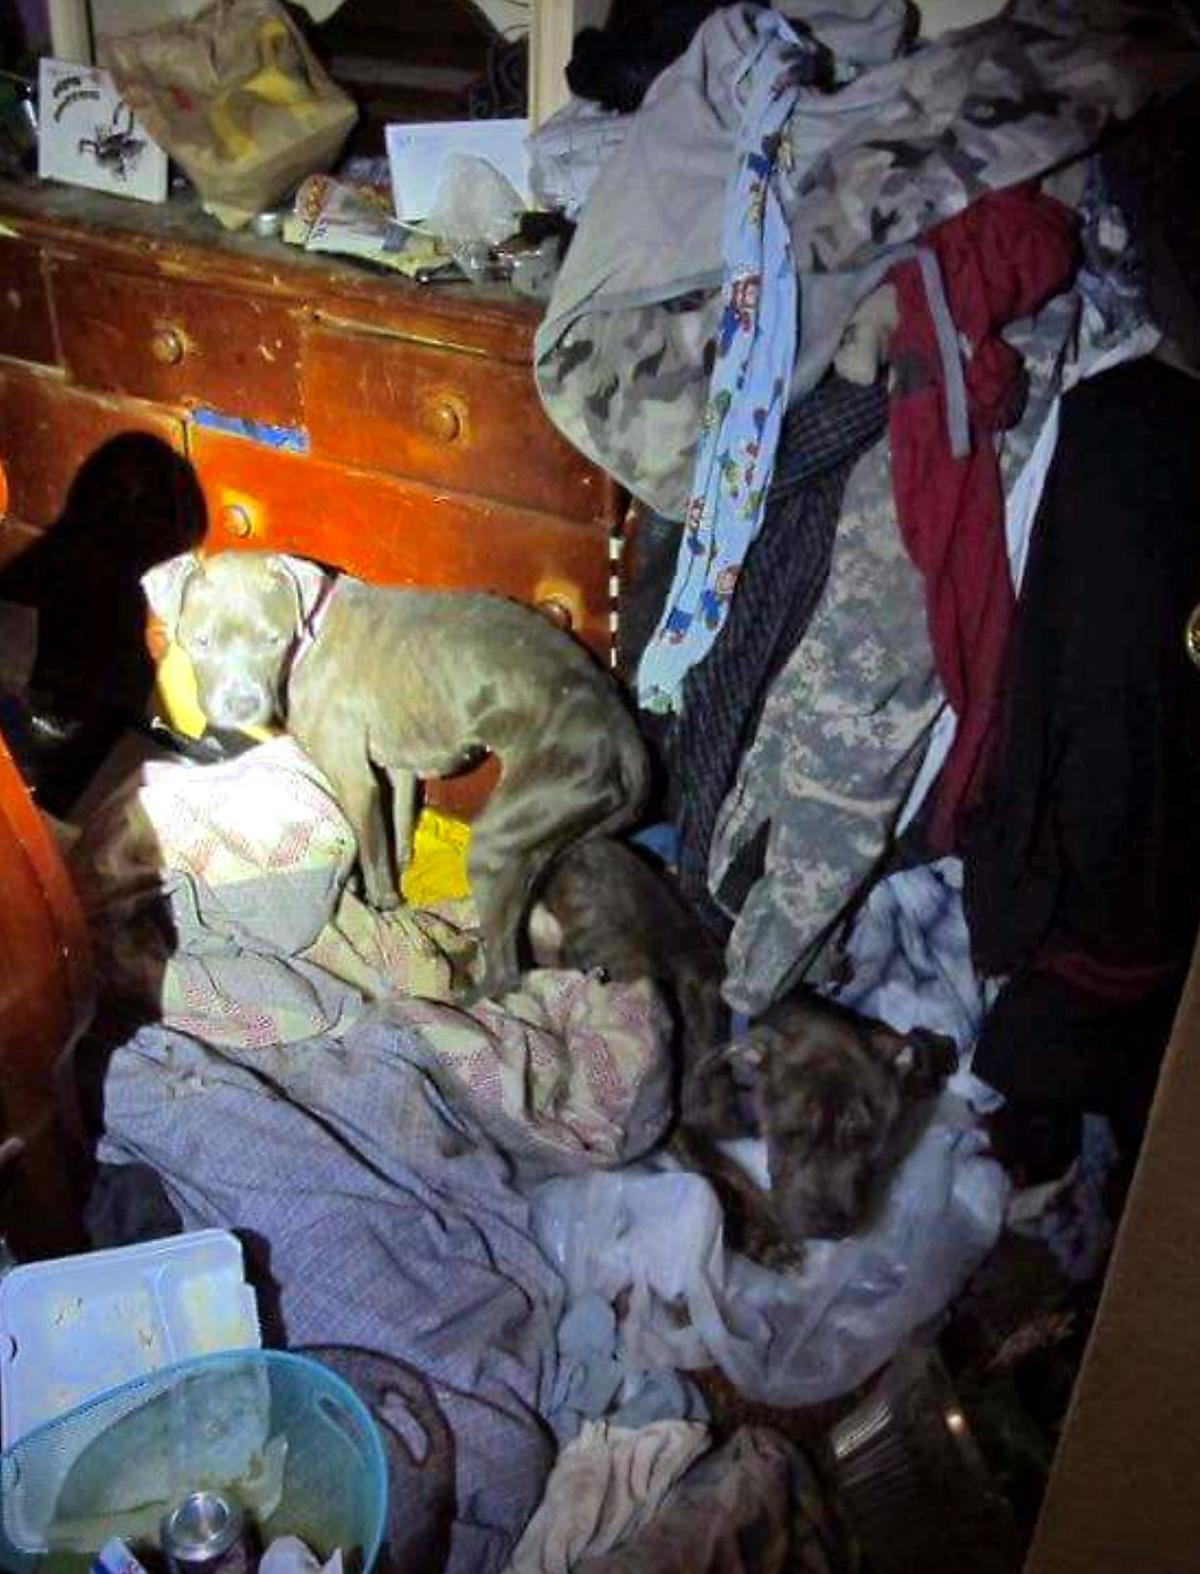 Florida Teen Found in Deplorable Living Conditions